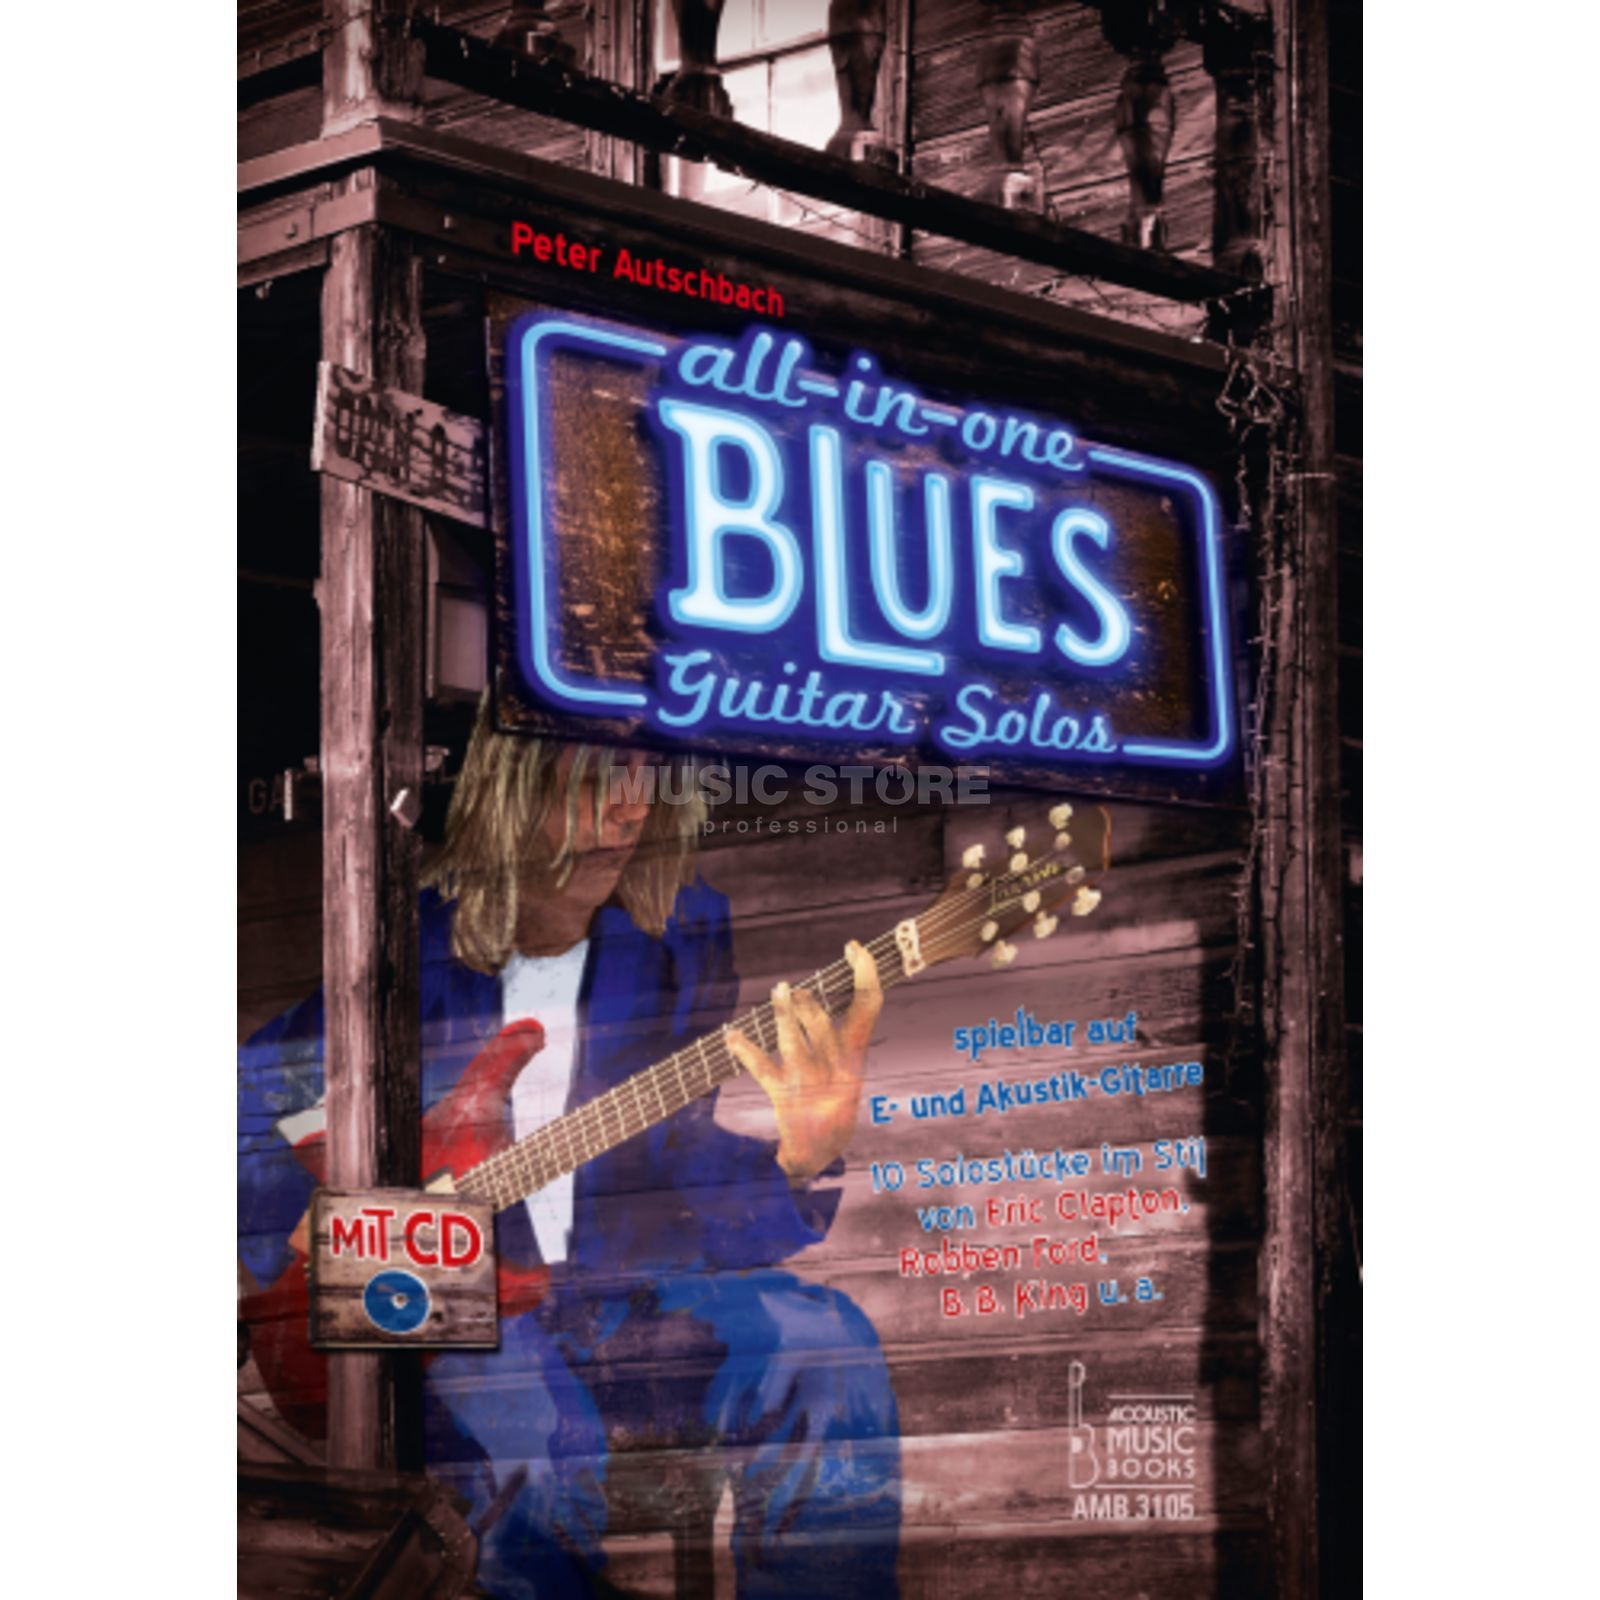 Acoustic Music Books All in One Blues Guitar Solos für E- und Akustik-Gitarre Produktbillede